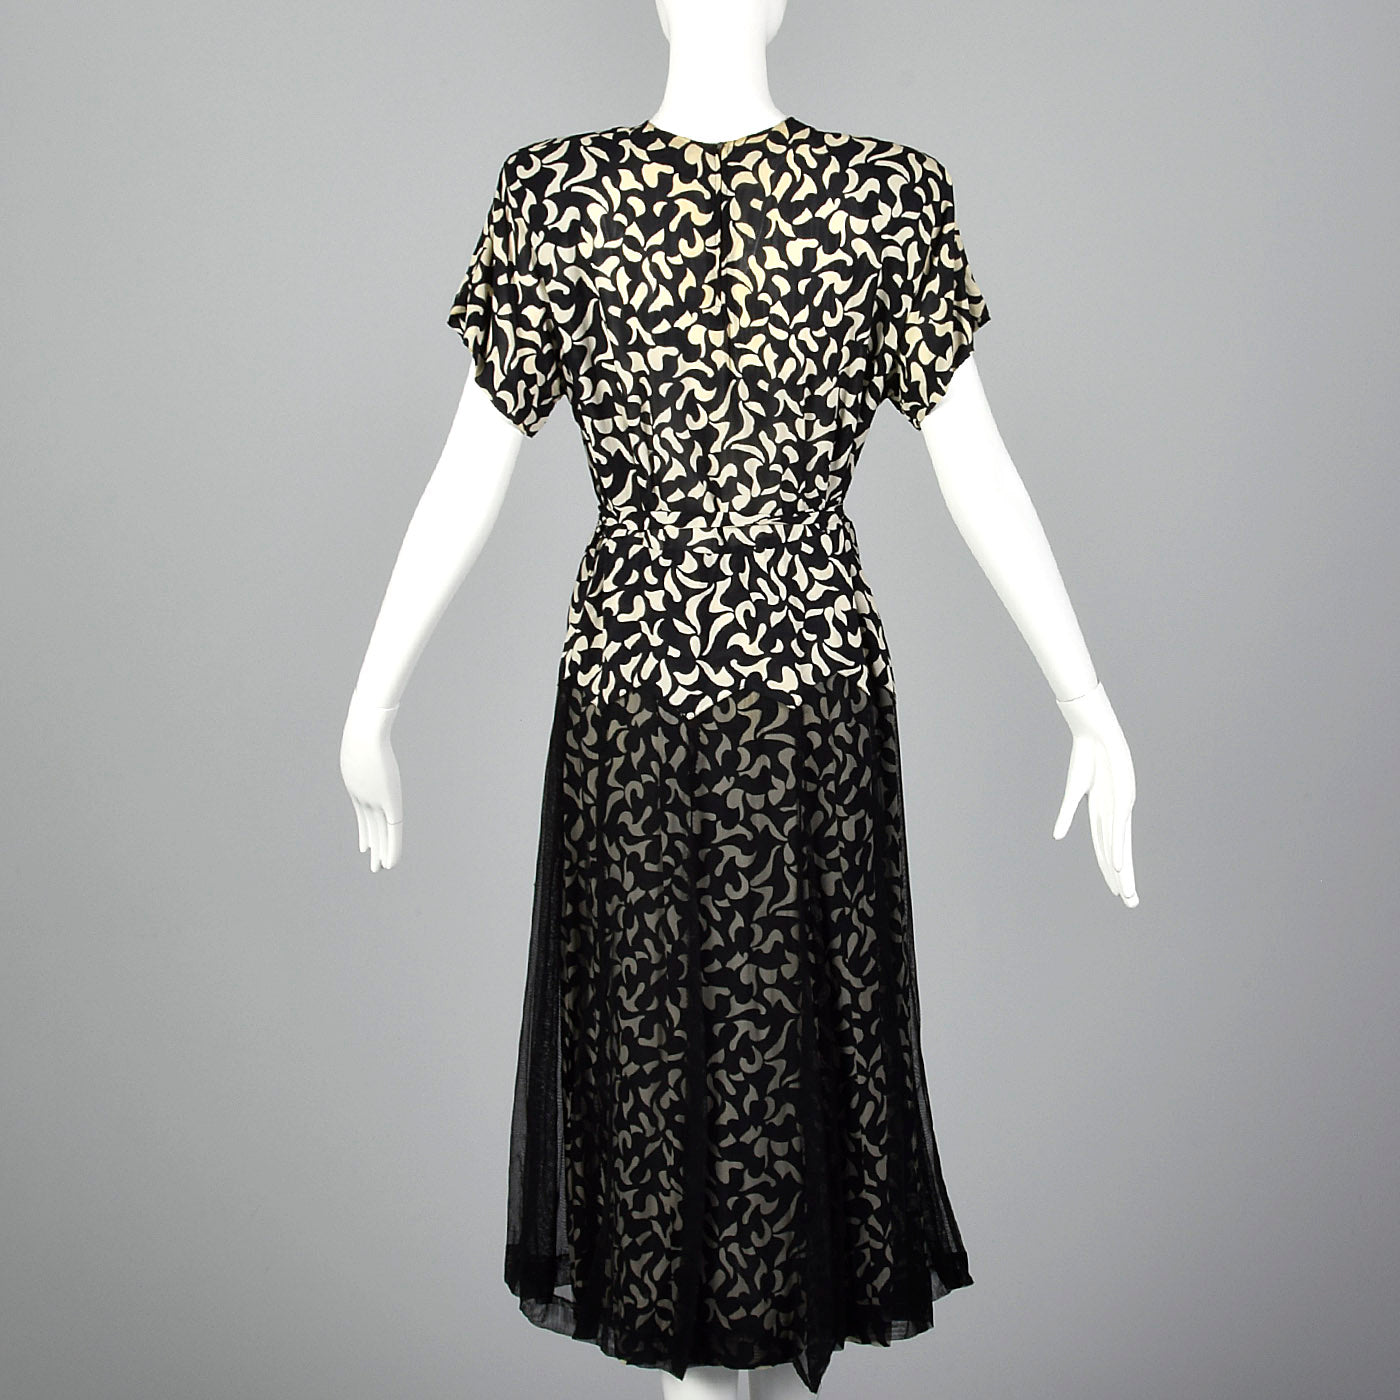 1940s Black and White Print Dress with Sheer Overlay